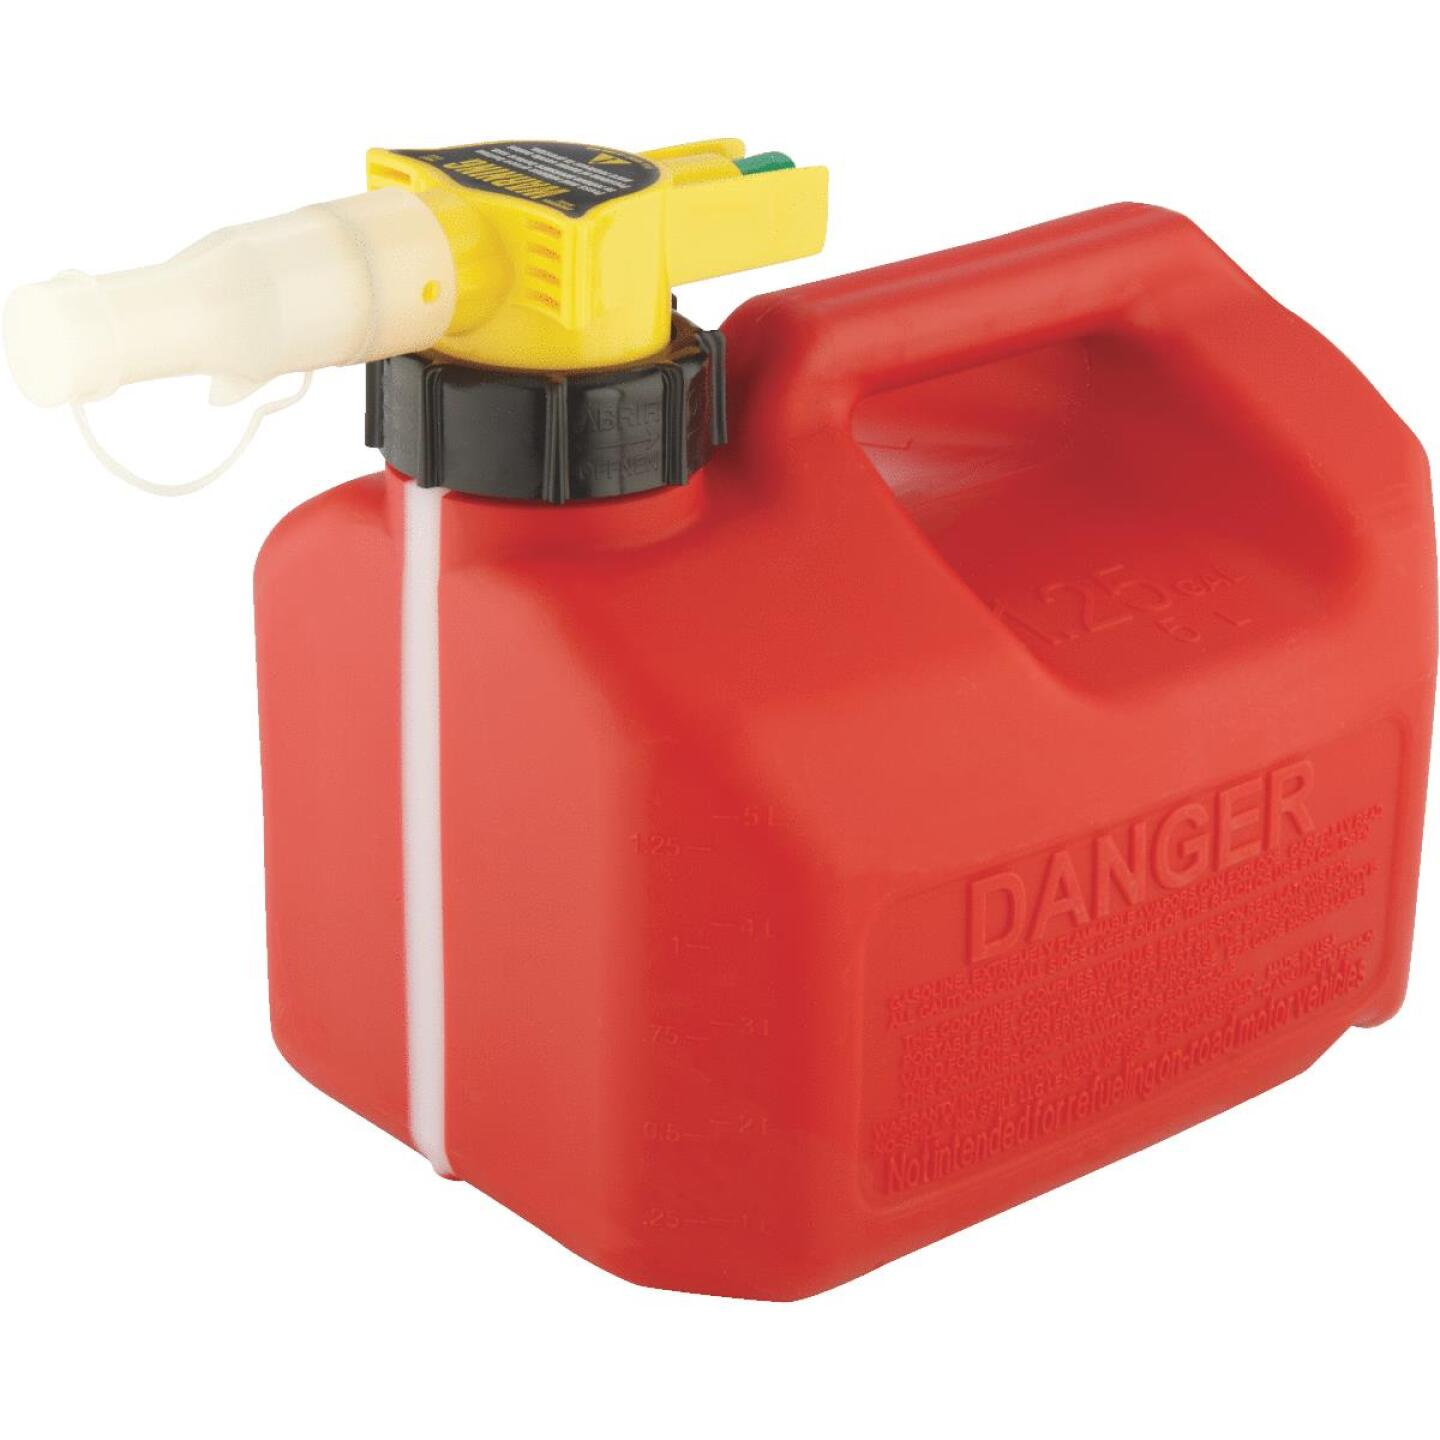 No-Spill 1-1/4 Gal. Plastic Gasoline Fuel Can, Red Image 3